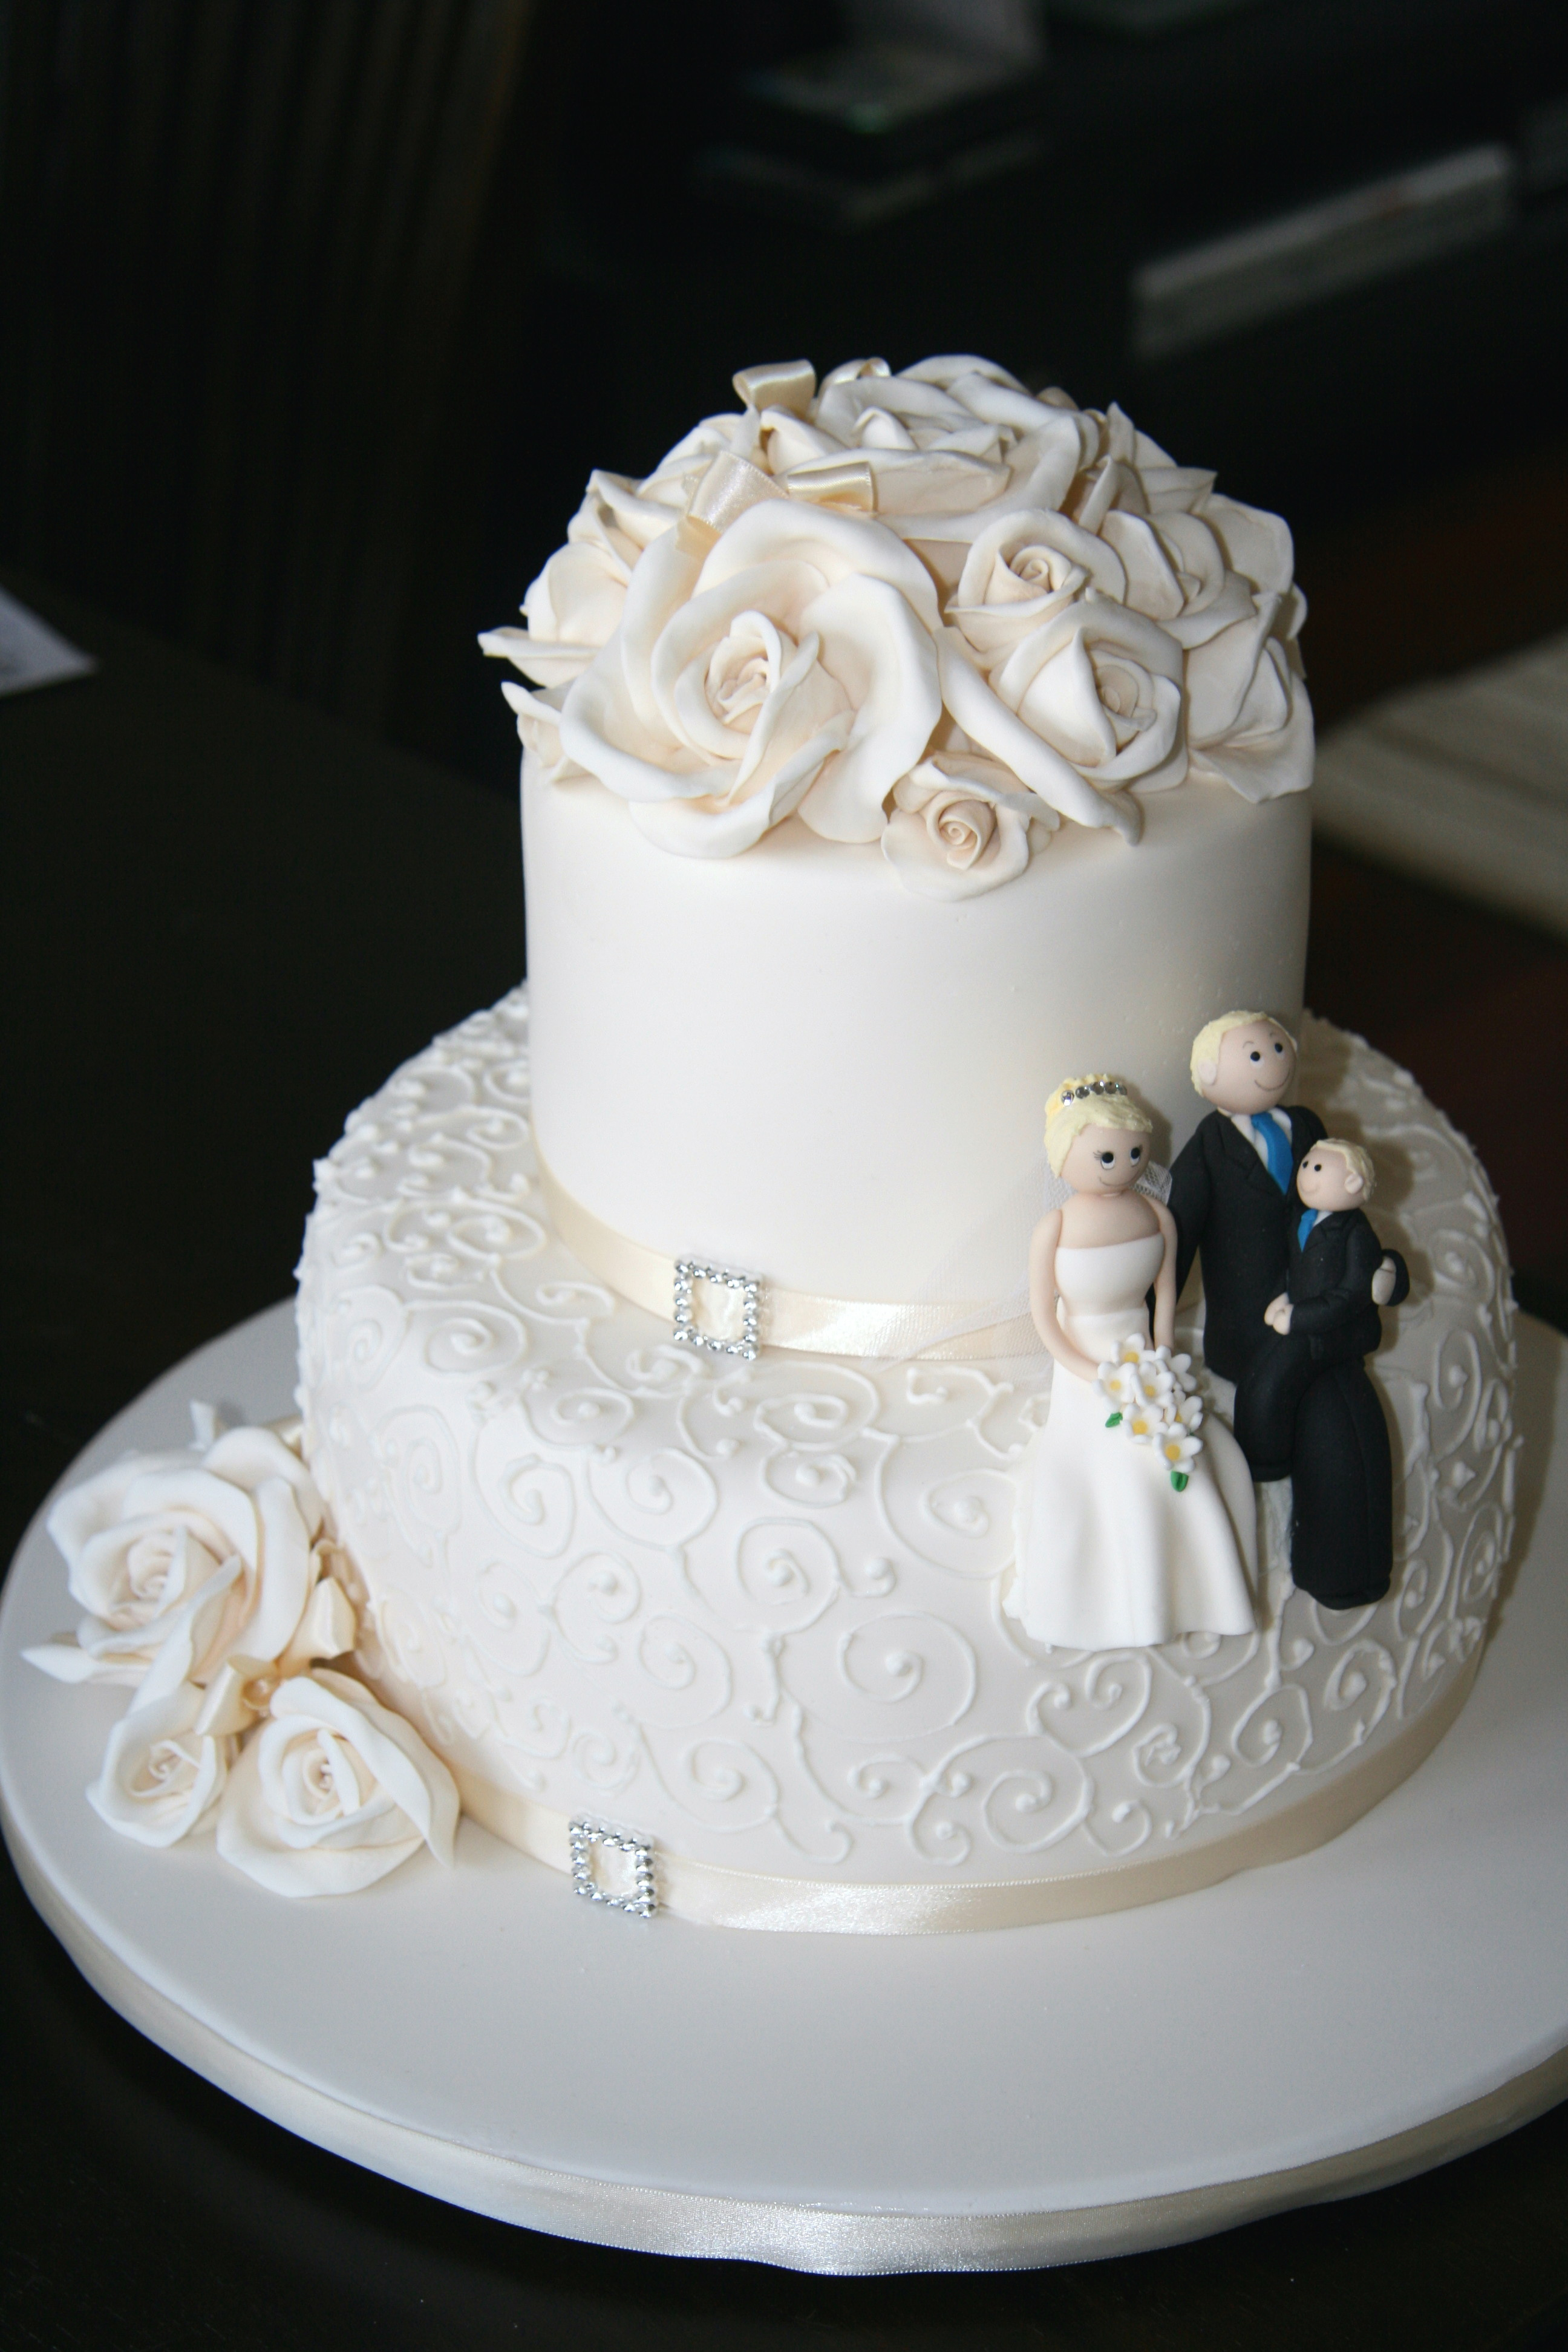 Cheap wedding cakes for the holiday: Pictures of simple 2 layer ...